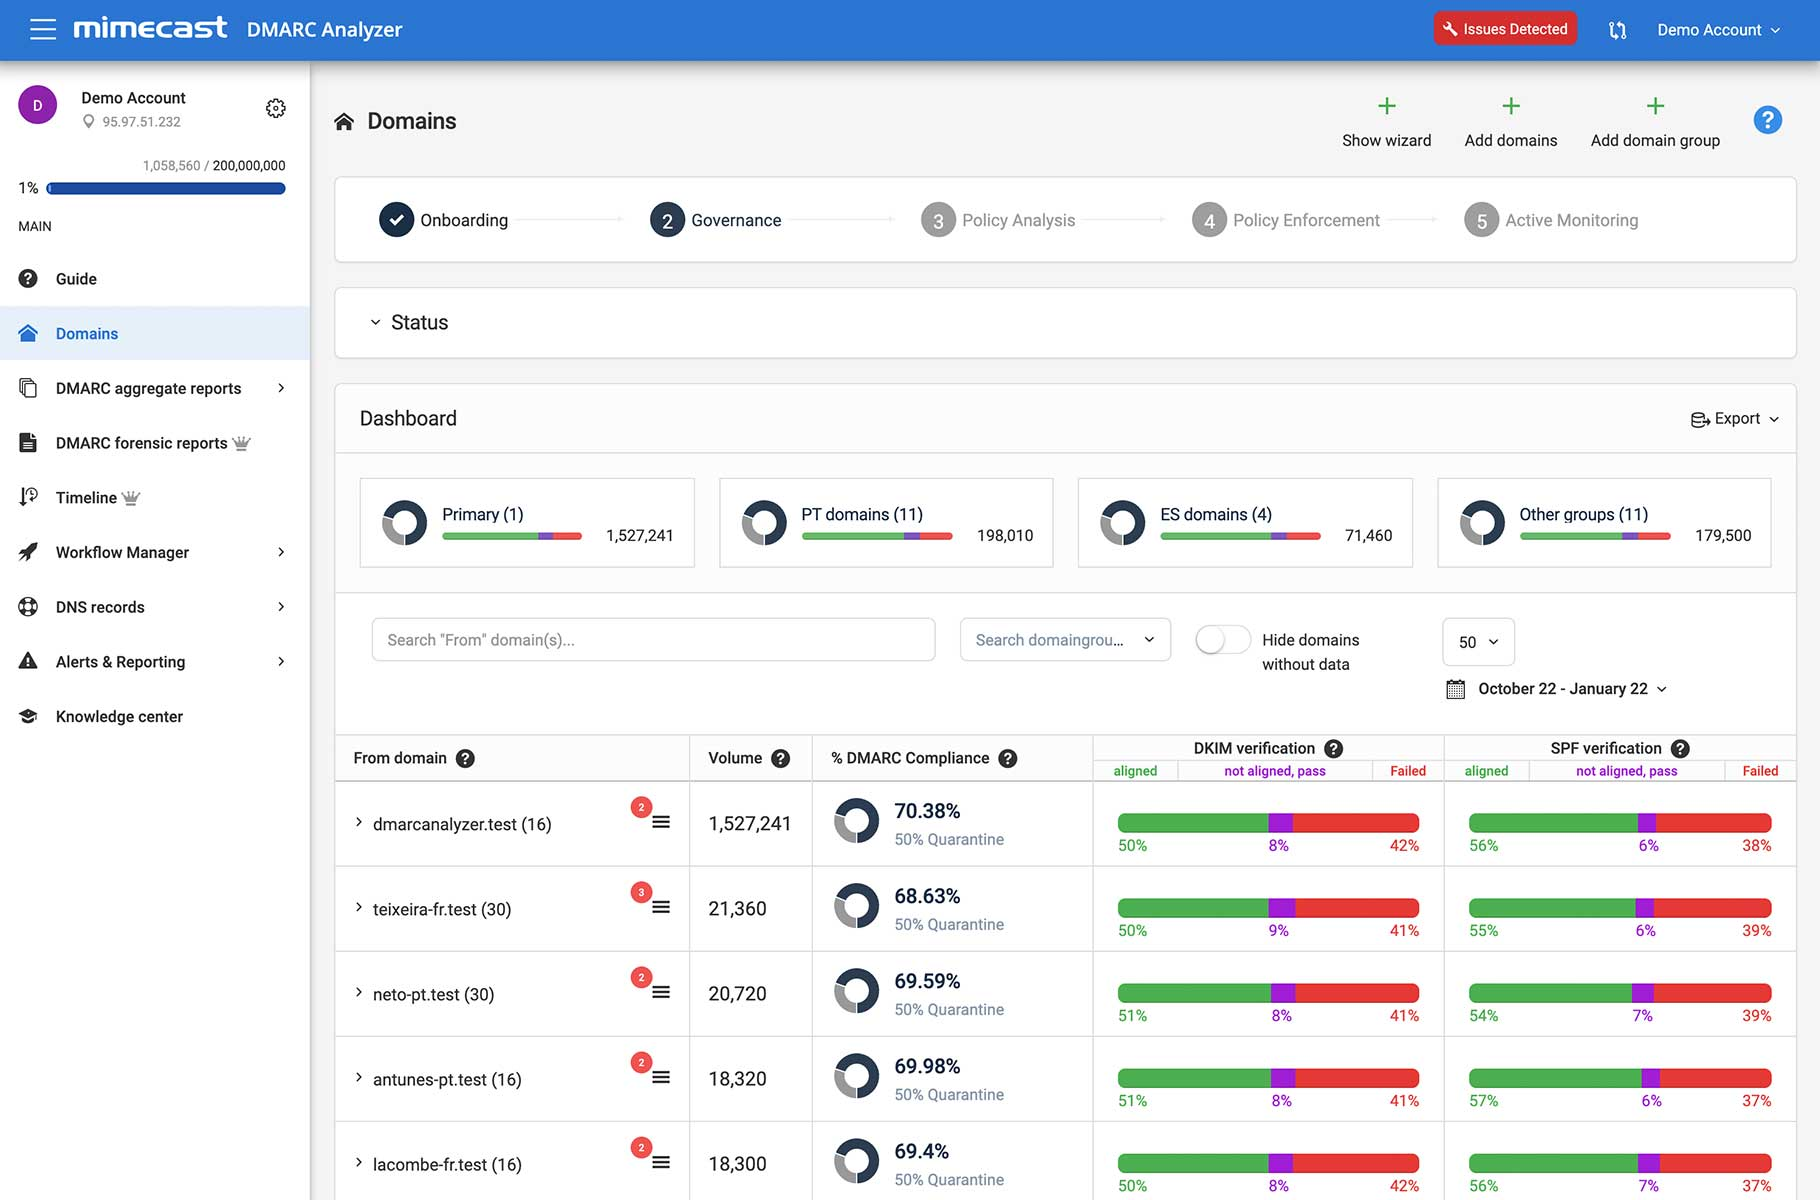 DMARC Analyzer Dashboard Suite